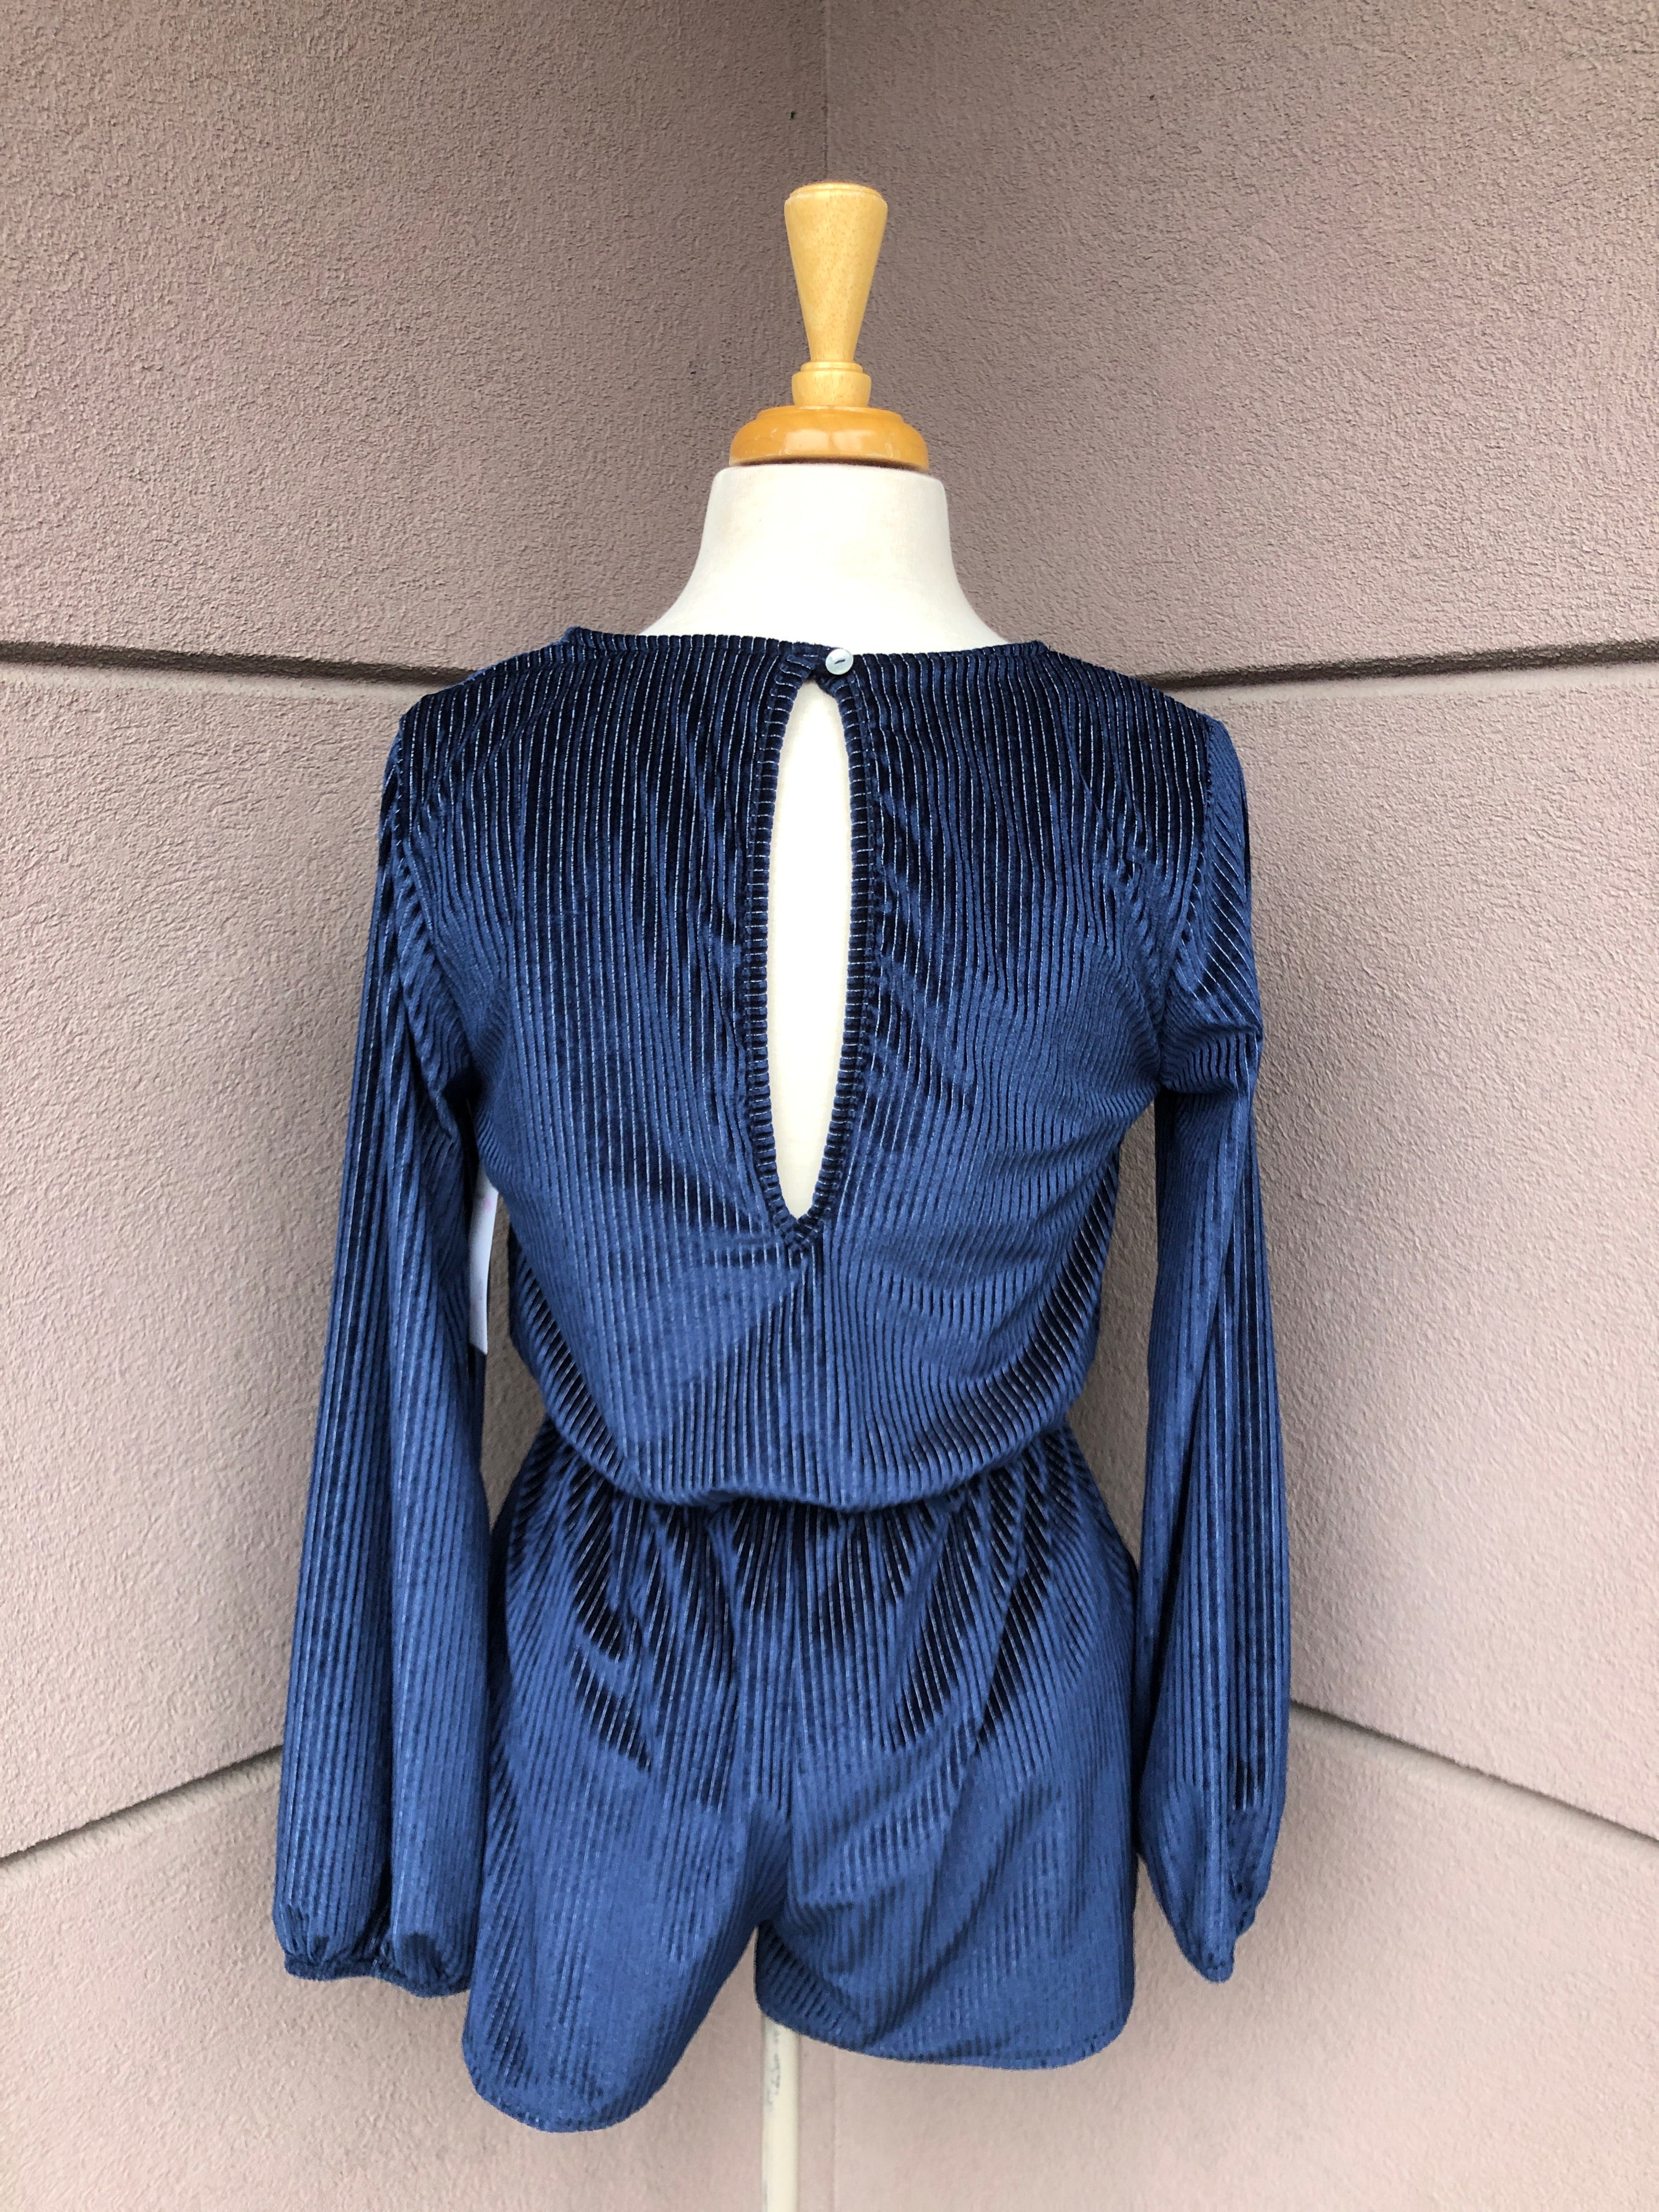 back view of blue romper